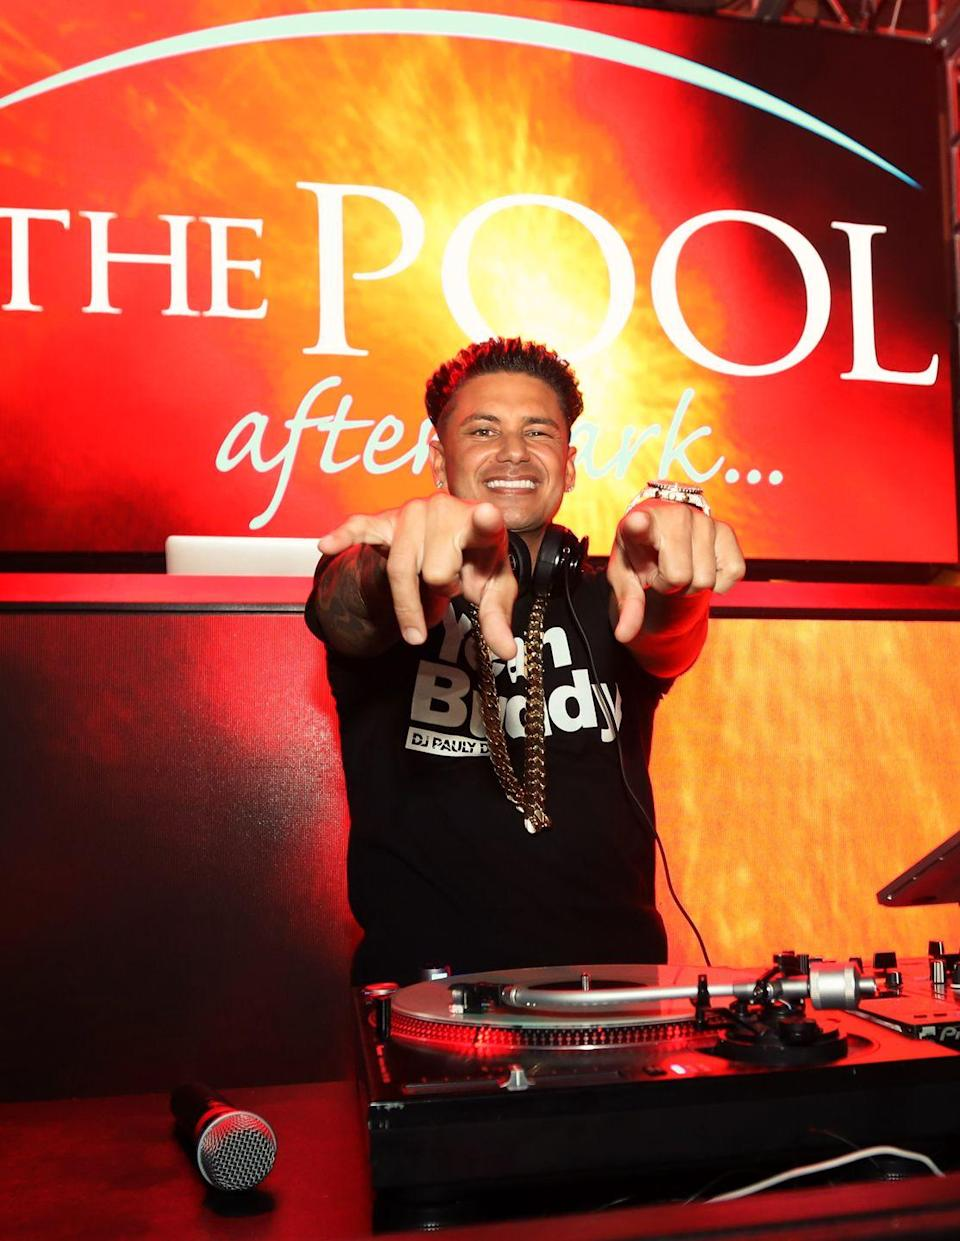 """<p>Pauly D is the richest cast member from <em>Jersey Shore </em>by far. <em><a href=""""https://www.celebritynetworth.com/richest-celebrities/richest-djs/dj-pauly-d-net-worth/"""" rel=""""nofollow noopener"""" target=""""_blank"""" data-ylk=""""slk:Celebrity Net Worth"""" class=""""link rapid-noclick-resp"""">Celebrity Net Worth</a> </em>estimates he was earning $150k per episode of the show, and is worth a whopping $20 million—in part thanks to his DJ career. According to a <a href=""""https://www.forbes.com/sites/zackomalleygreenburg/2012/08/02/gym-tan-money-inside-pauly-d-11-million-payday/#539b678050e0"""" rel=""""nofollow noopener"""" target=""""_blank"""" data-ylk=""""slk:Forbes"""" class=""""link rapid-noclick-resp""""><em>Forbes</em></a> article from 2012, Pauly D takes home an average of $40,000 per set, and he's performed at clubs, private parties, and even opened for Britney Spears. Aside from that, he's launched clothing and (naturally) tanning lotion lines, and also appeared on reality shows like <em>The Pauly D Project,</em> <em>Famously Single, </em>and <em>Double Shot at Love.</em></p>"""